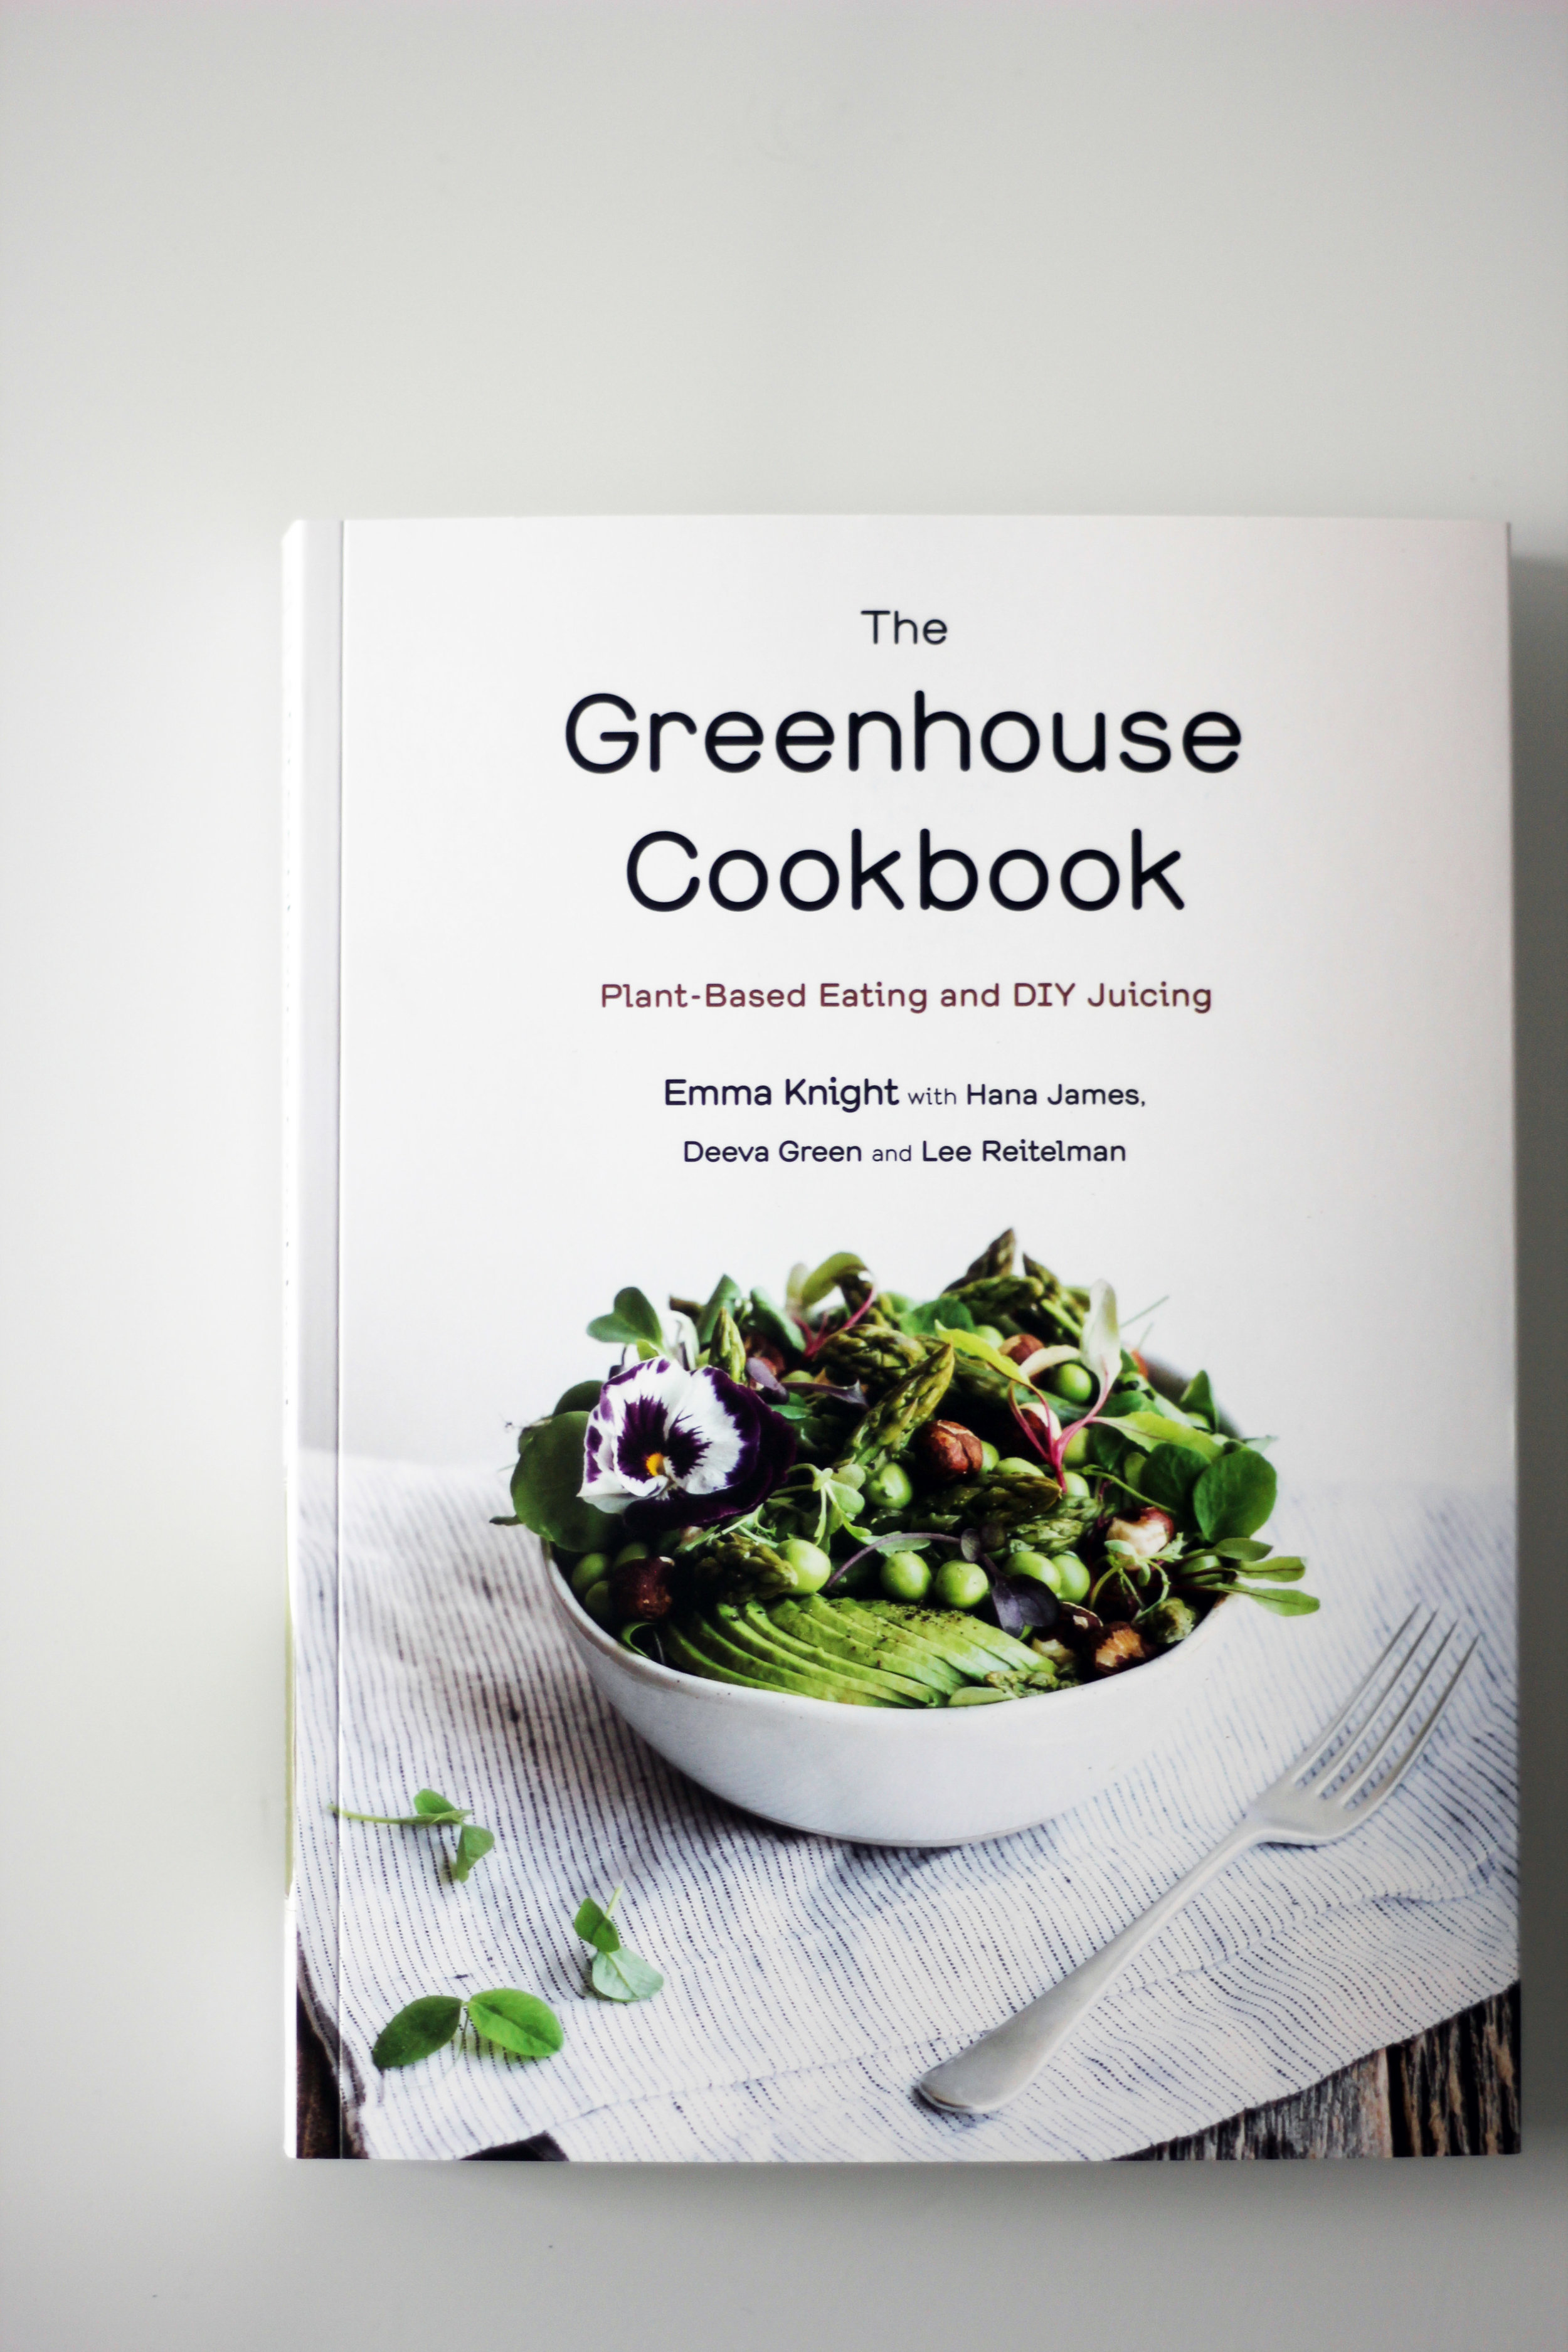 Enter to win! - A 100-recipe love letter to the vegetable kingdom, yours to own. Enter below.